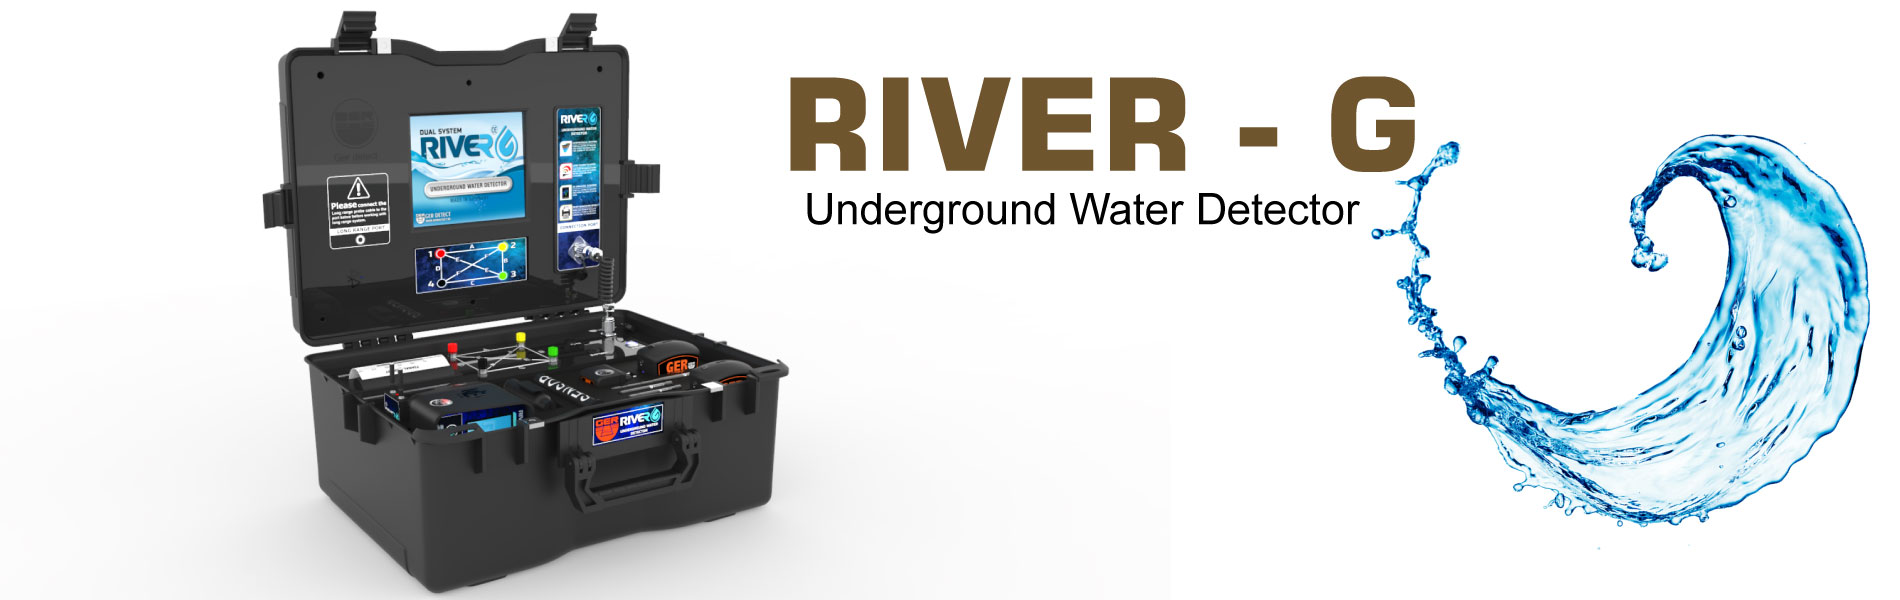 river-g-water-detector-device